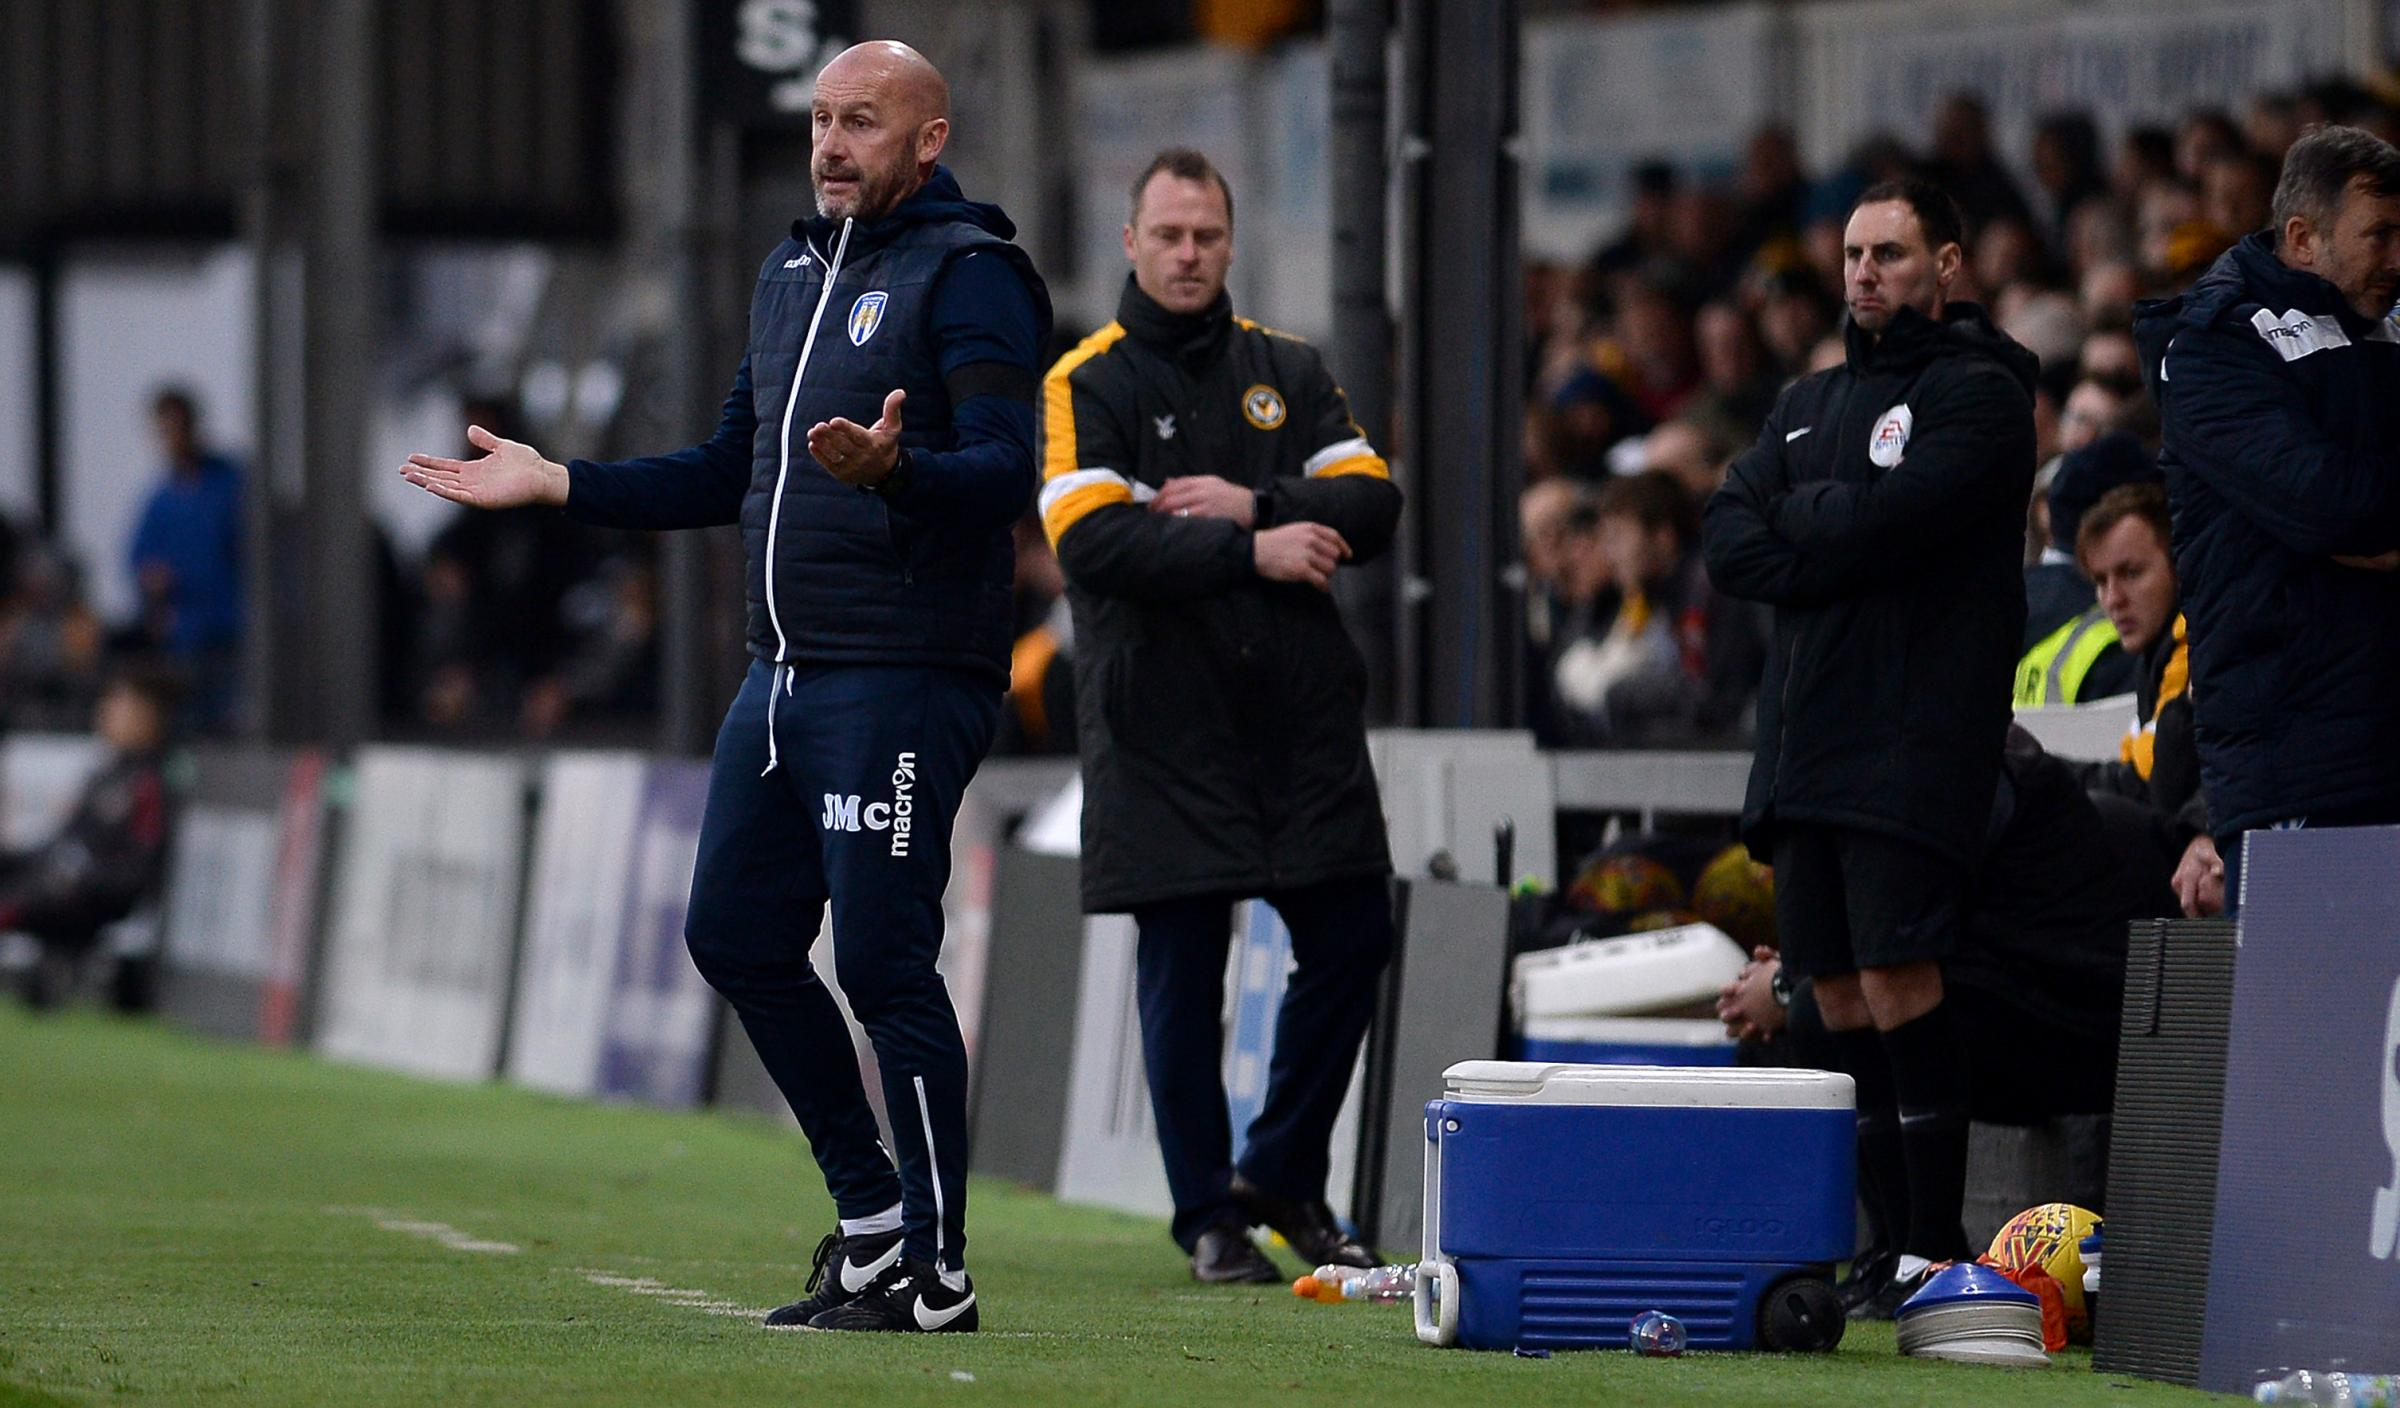 Watching brief - Colchester United head coach John McGreal at Newport County Picture: PAGEPIX